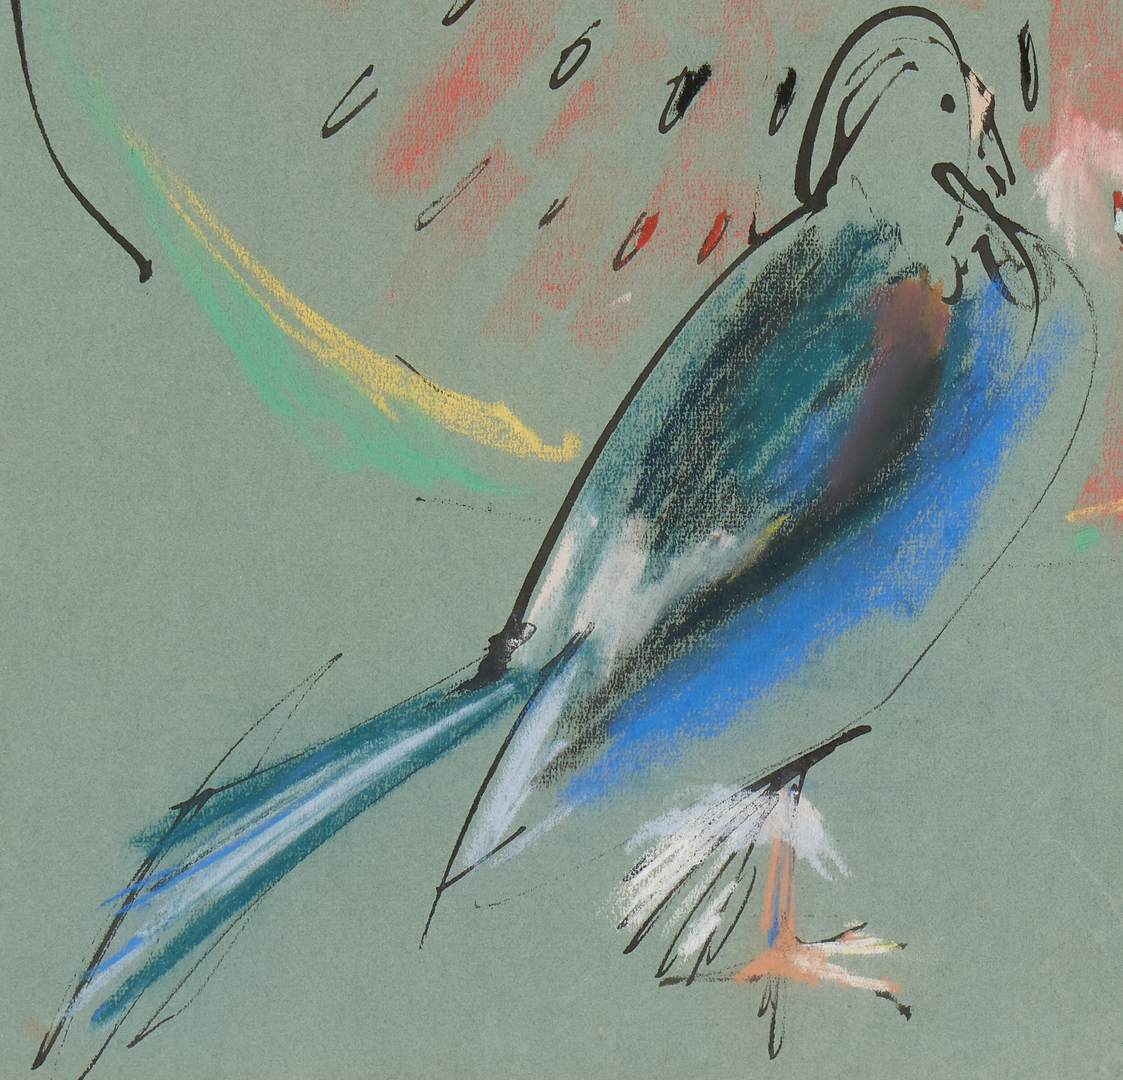 Lot 484: 5 Bird Related Works on Paper, incl. Dan Miller